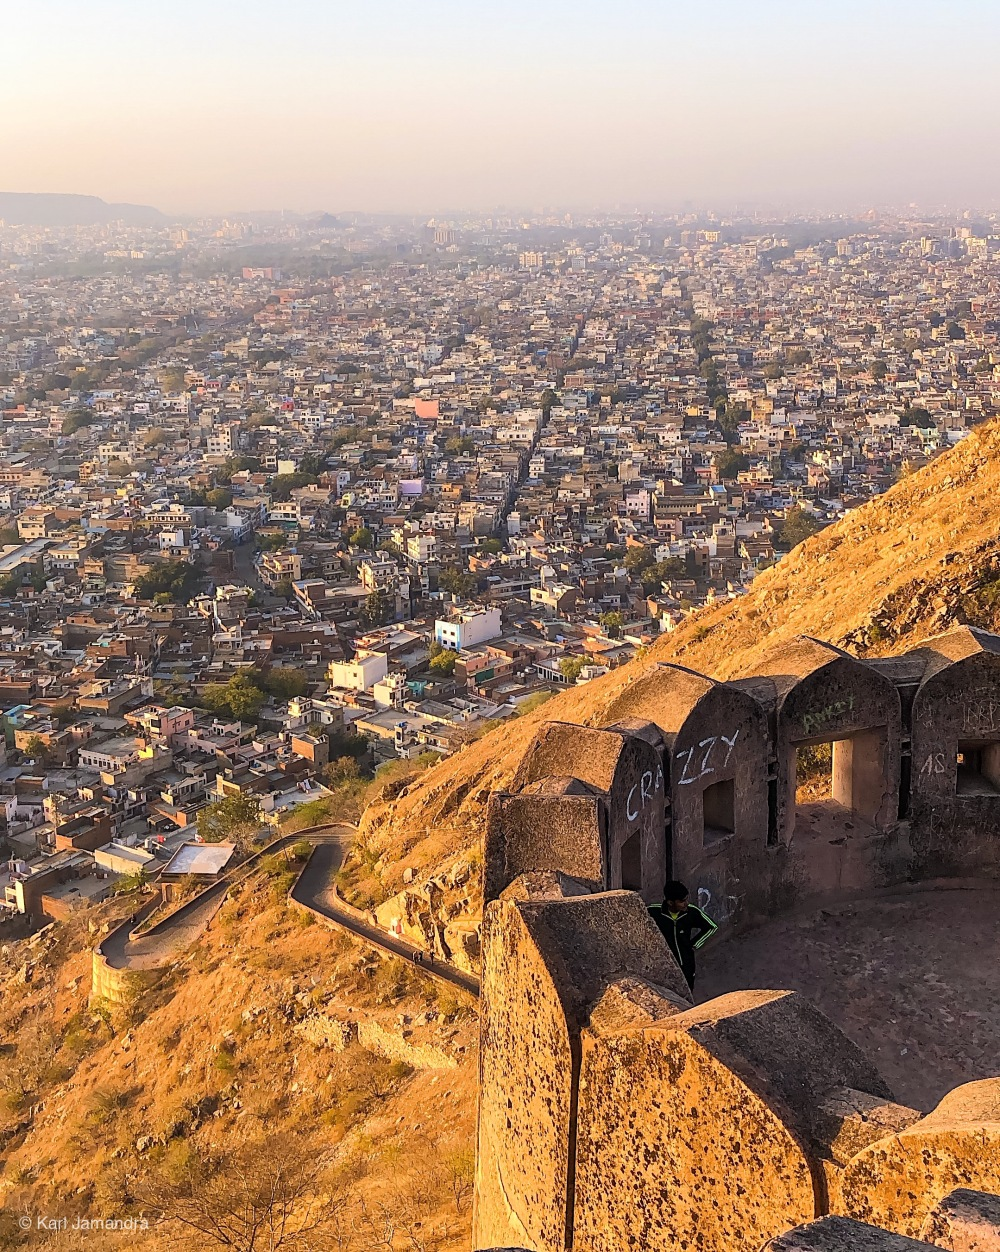 OVERLOOKING THE CITY OF JAIPUR